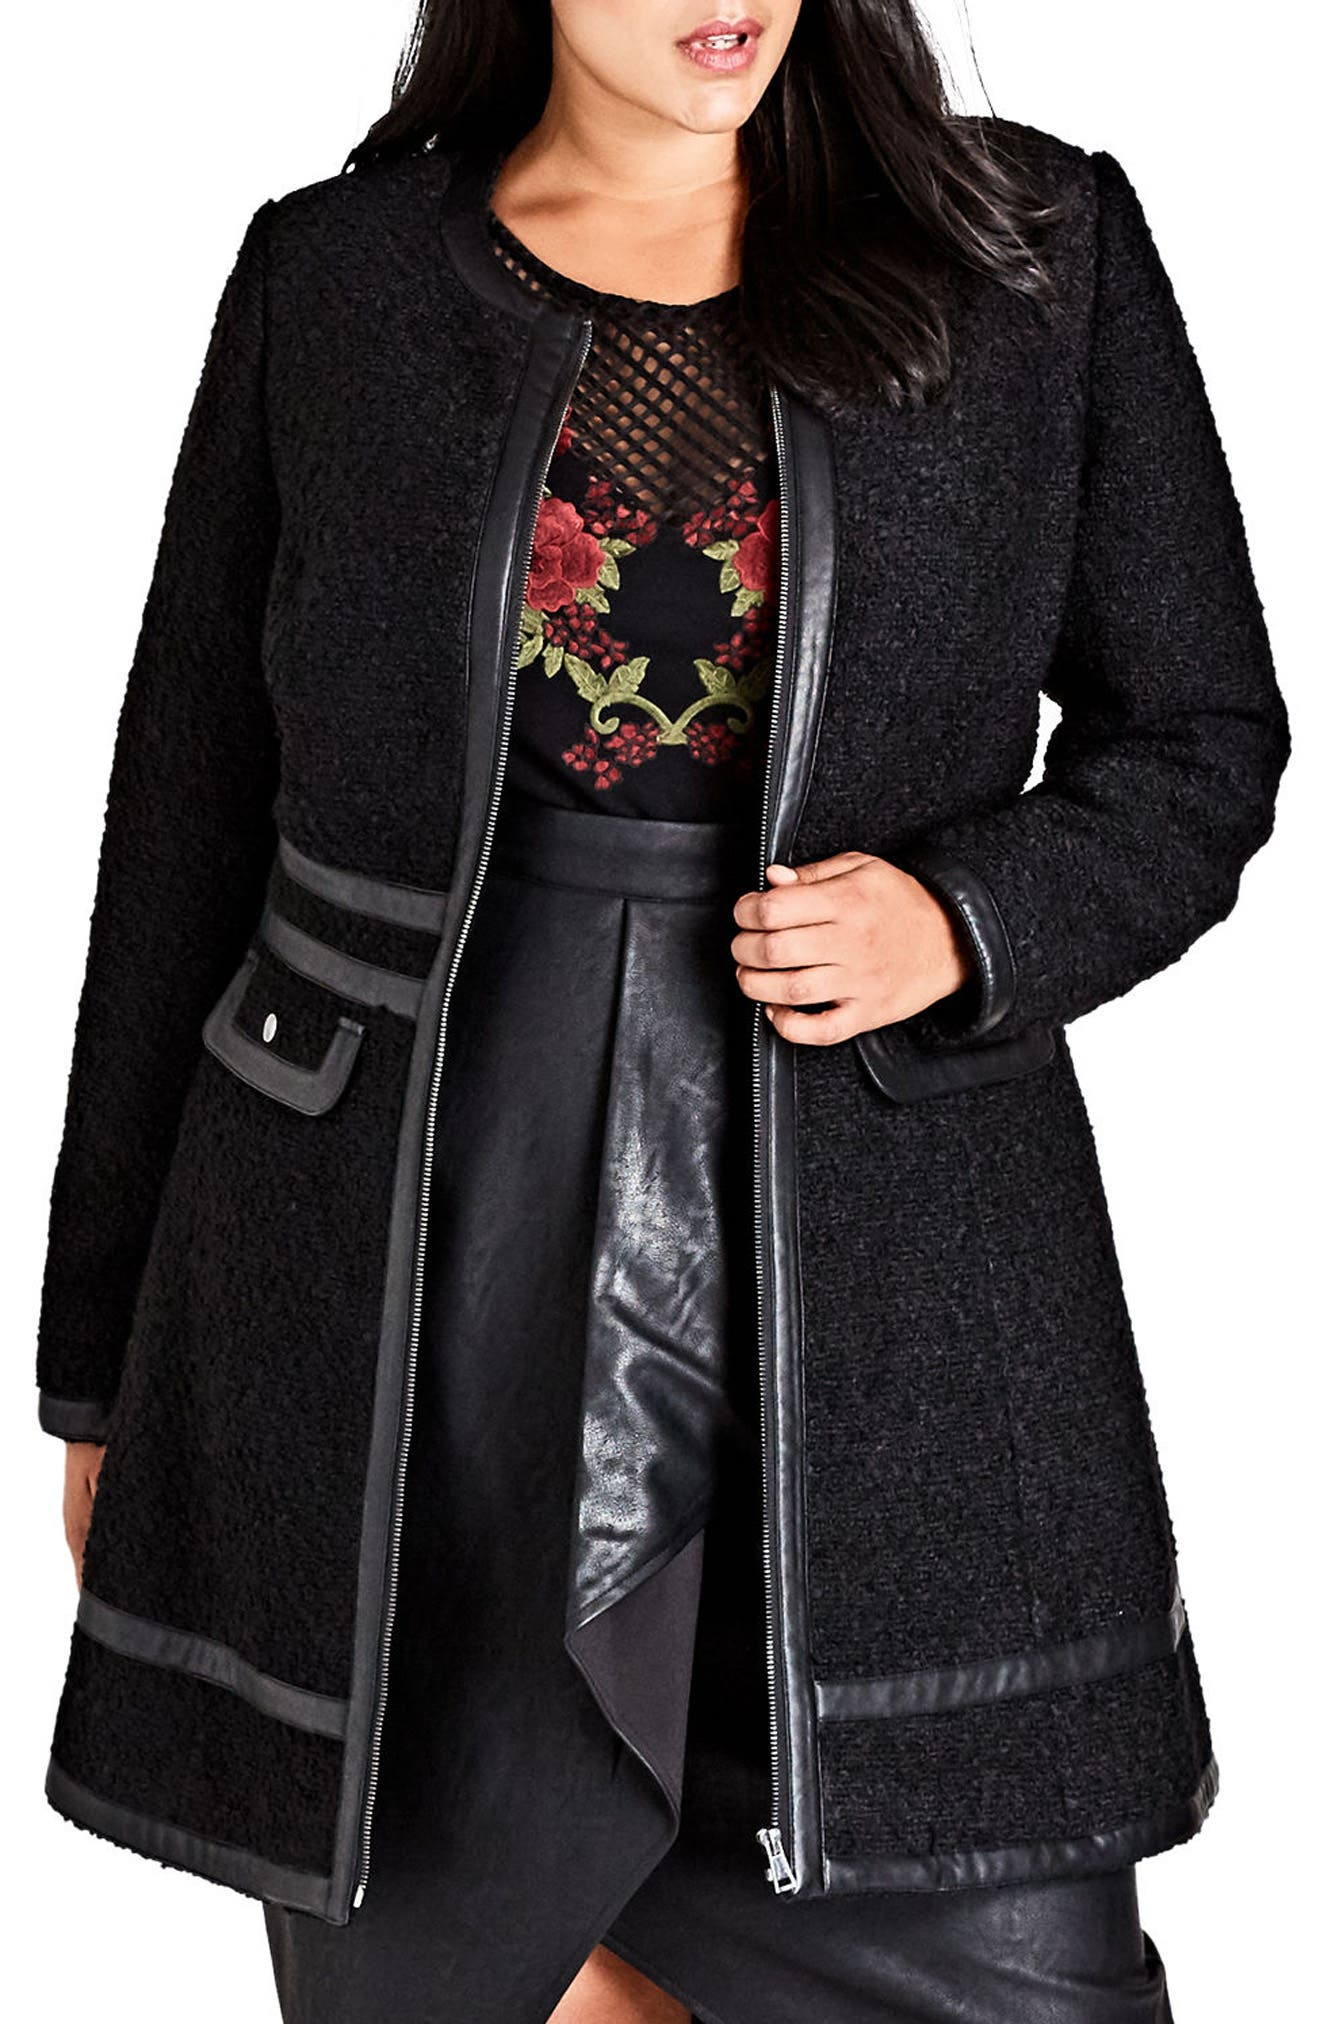 Bouclé Car Coat,                             Main thumbnail 1, color,                             Black